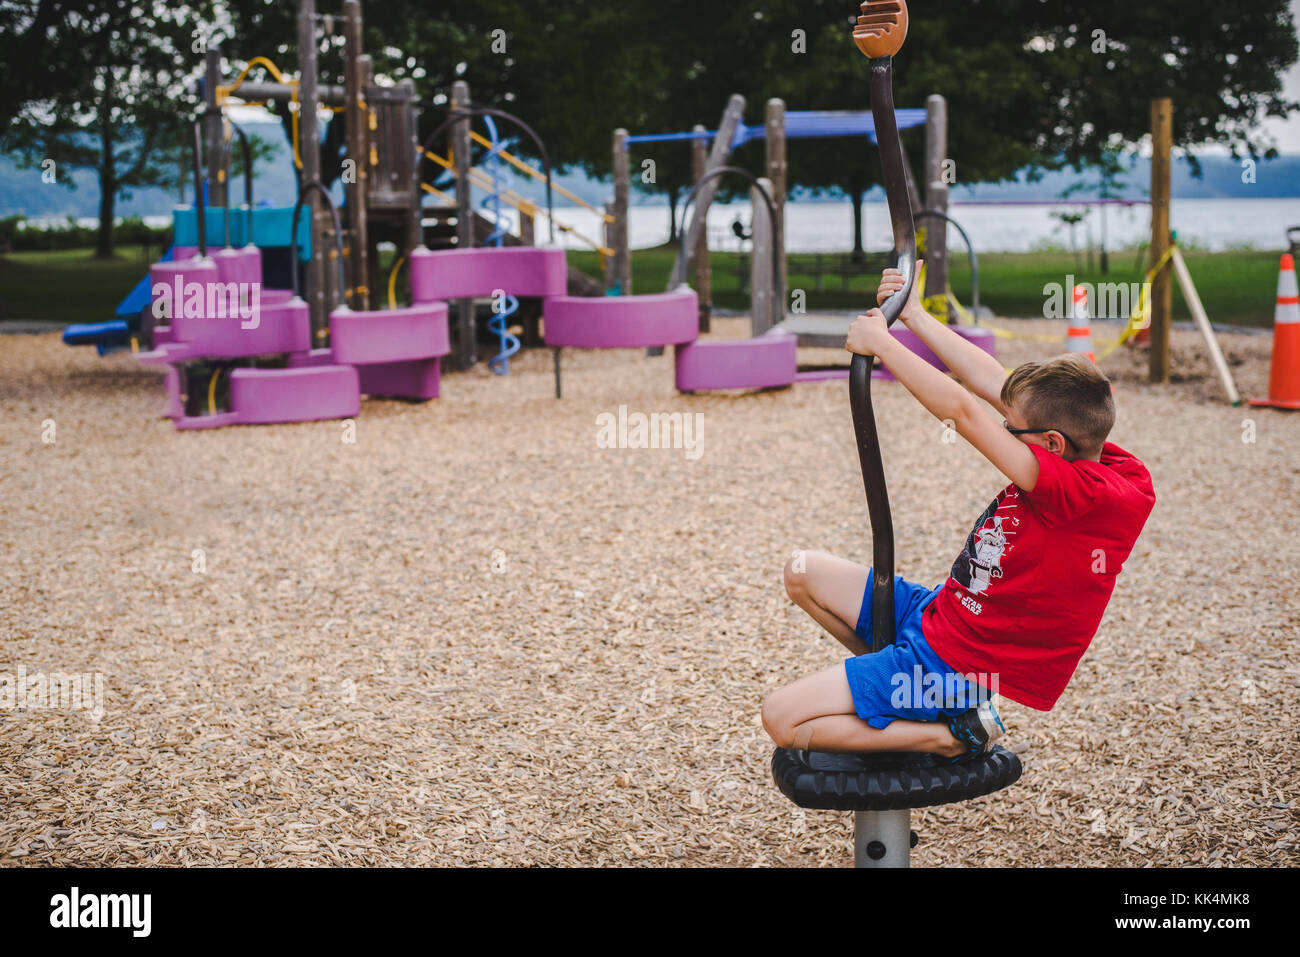 A boy child plays on playground equipment on a summer day - Stock Image